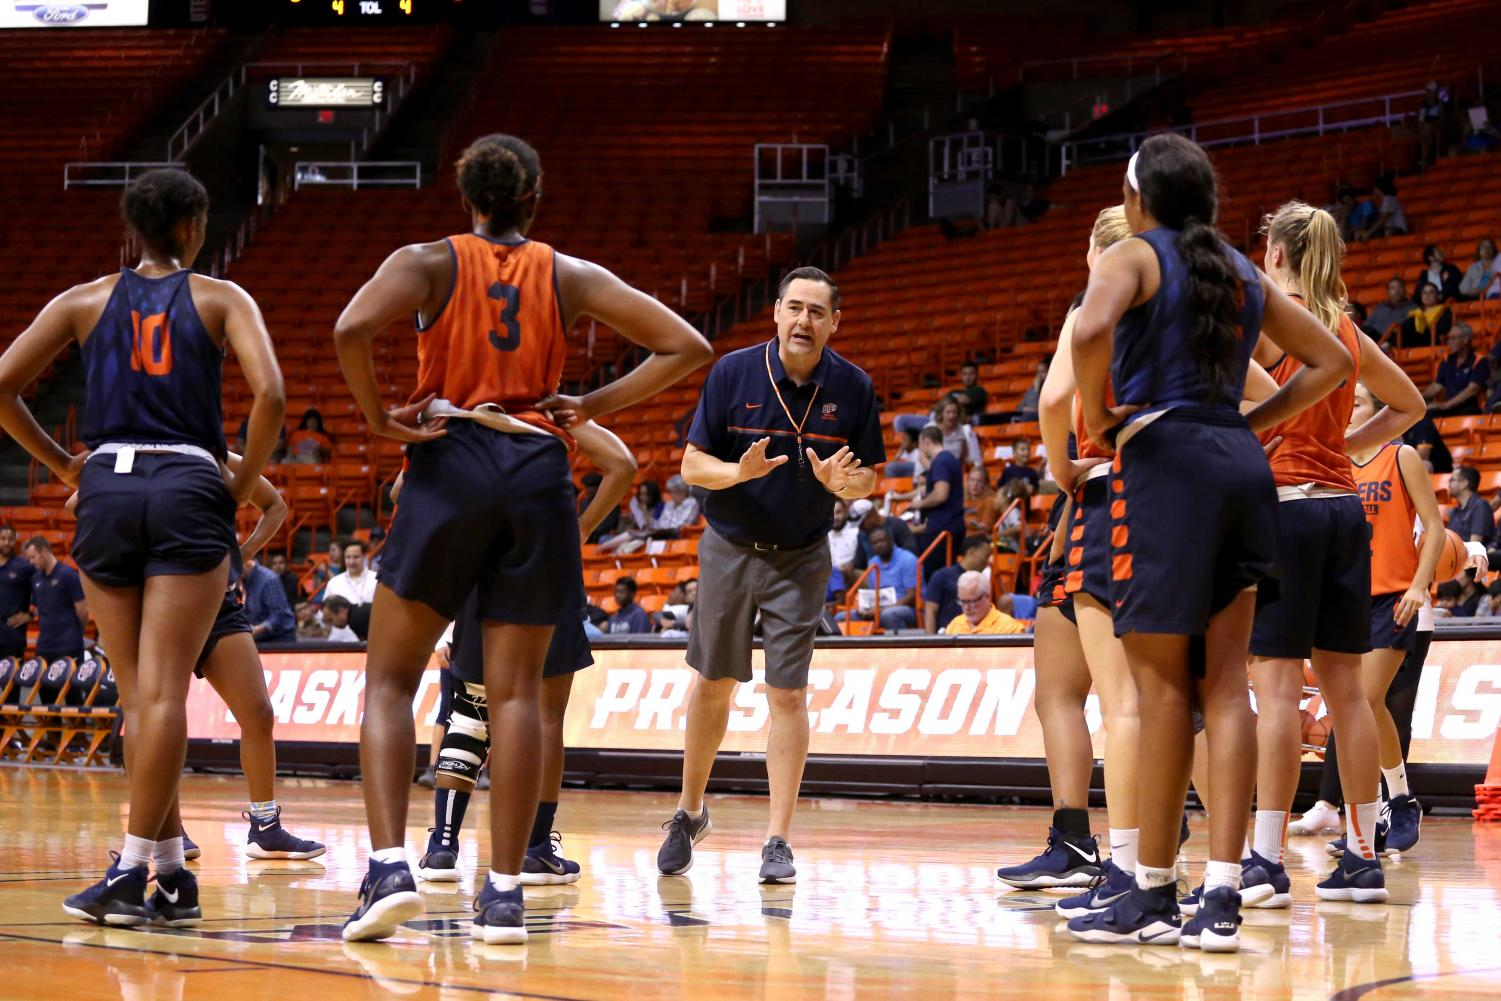 Women%27s+basketball+Head+Coach+Kevin+Baker+gives+his+team+instructions+on+the+next+drill++during+the+basketball+pre+season+showcase+at+the+Don+Haskins+Center+on+Wednesday%2C+Oct.+10.+